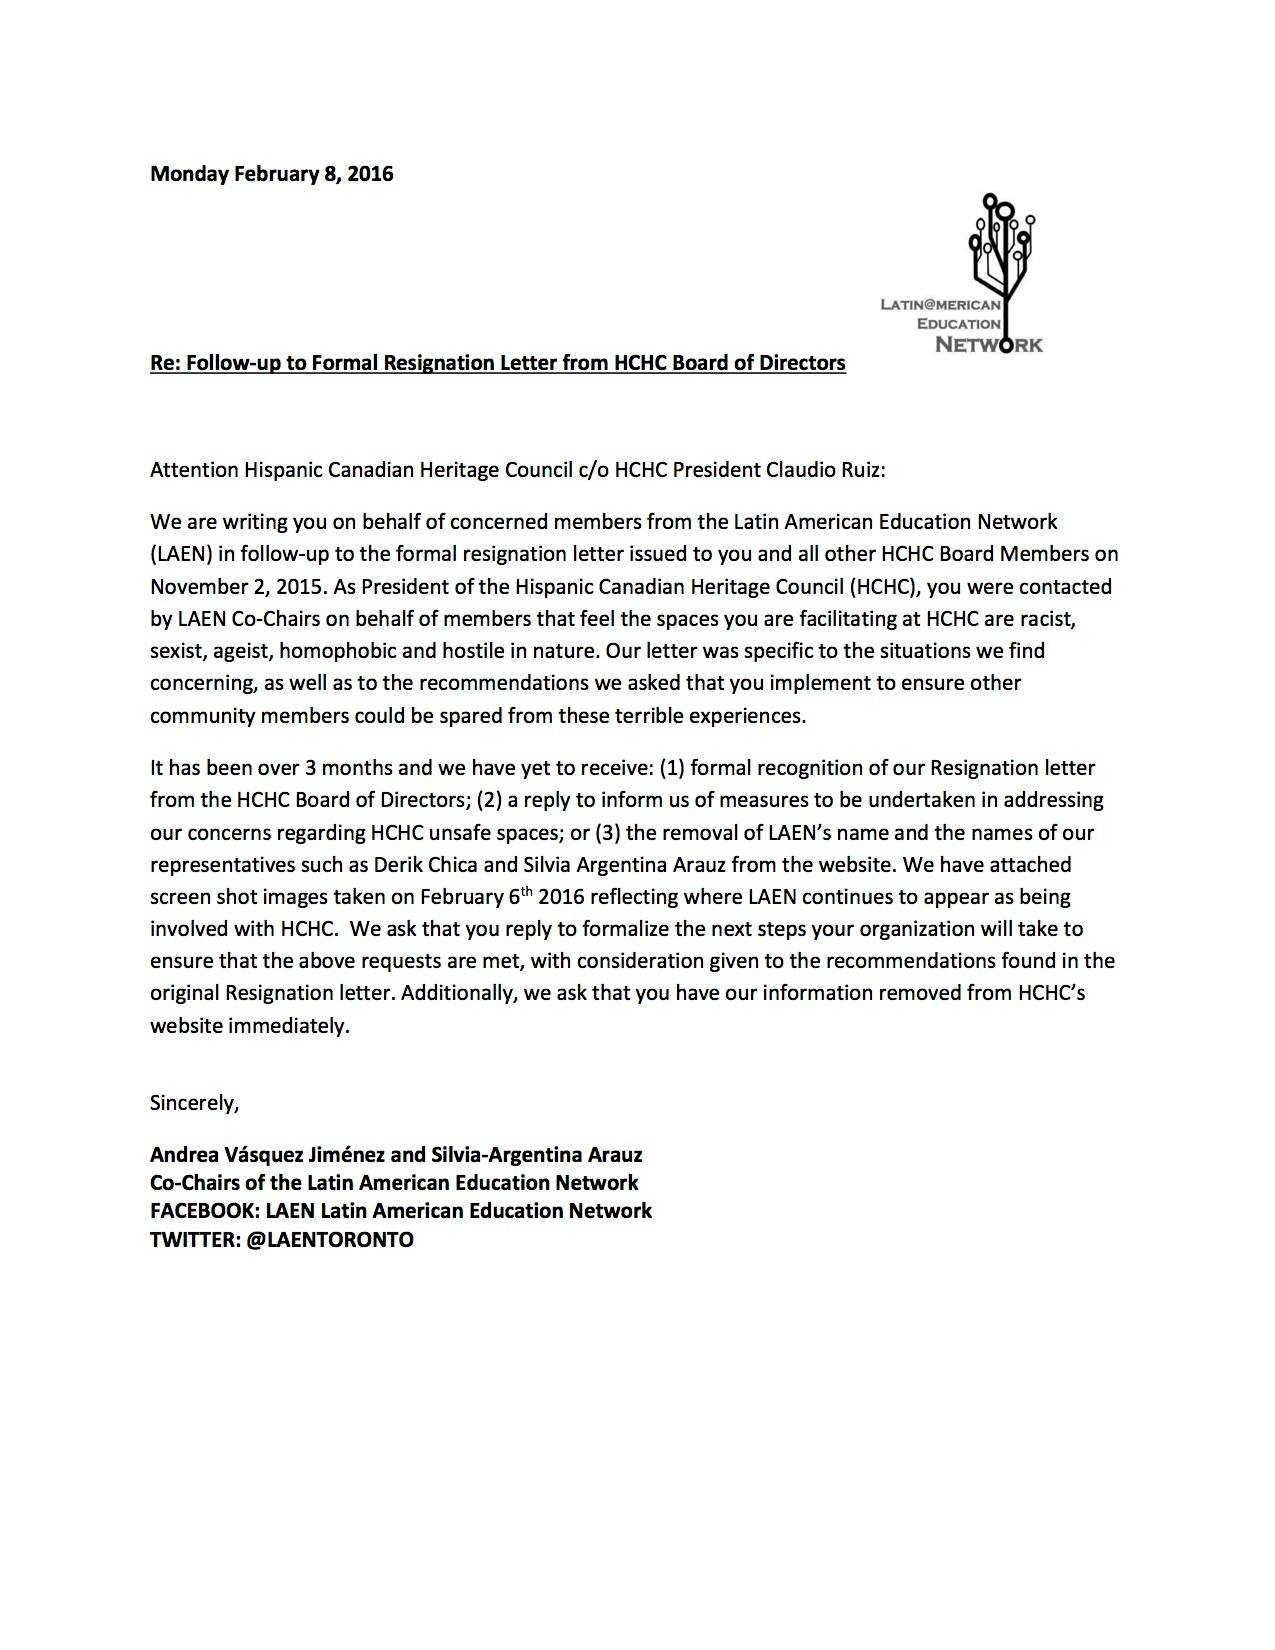 Follow up to formal resignation letter from hchc board of directors follow up to formal resignation letter from hchc board of directors latinx afro latin america abya yala education network formerly latin american expocarfo Image collections